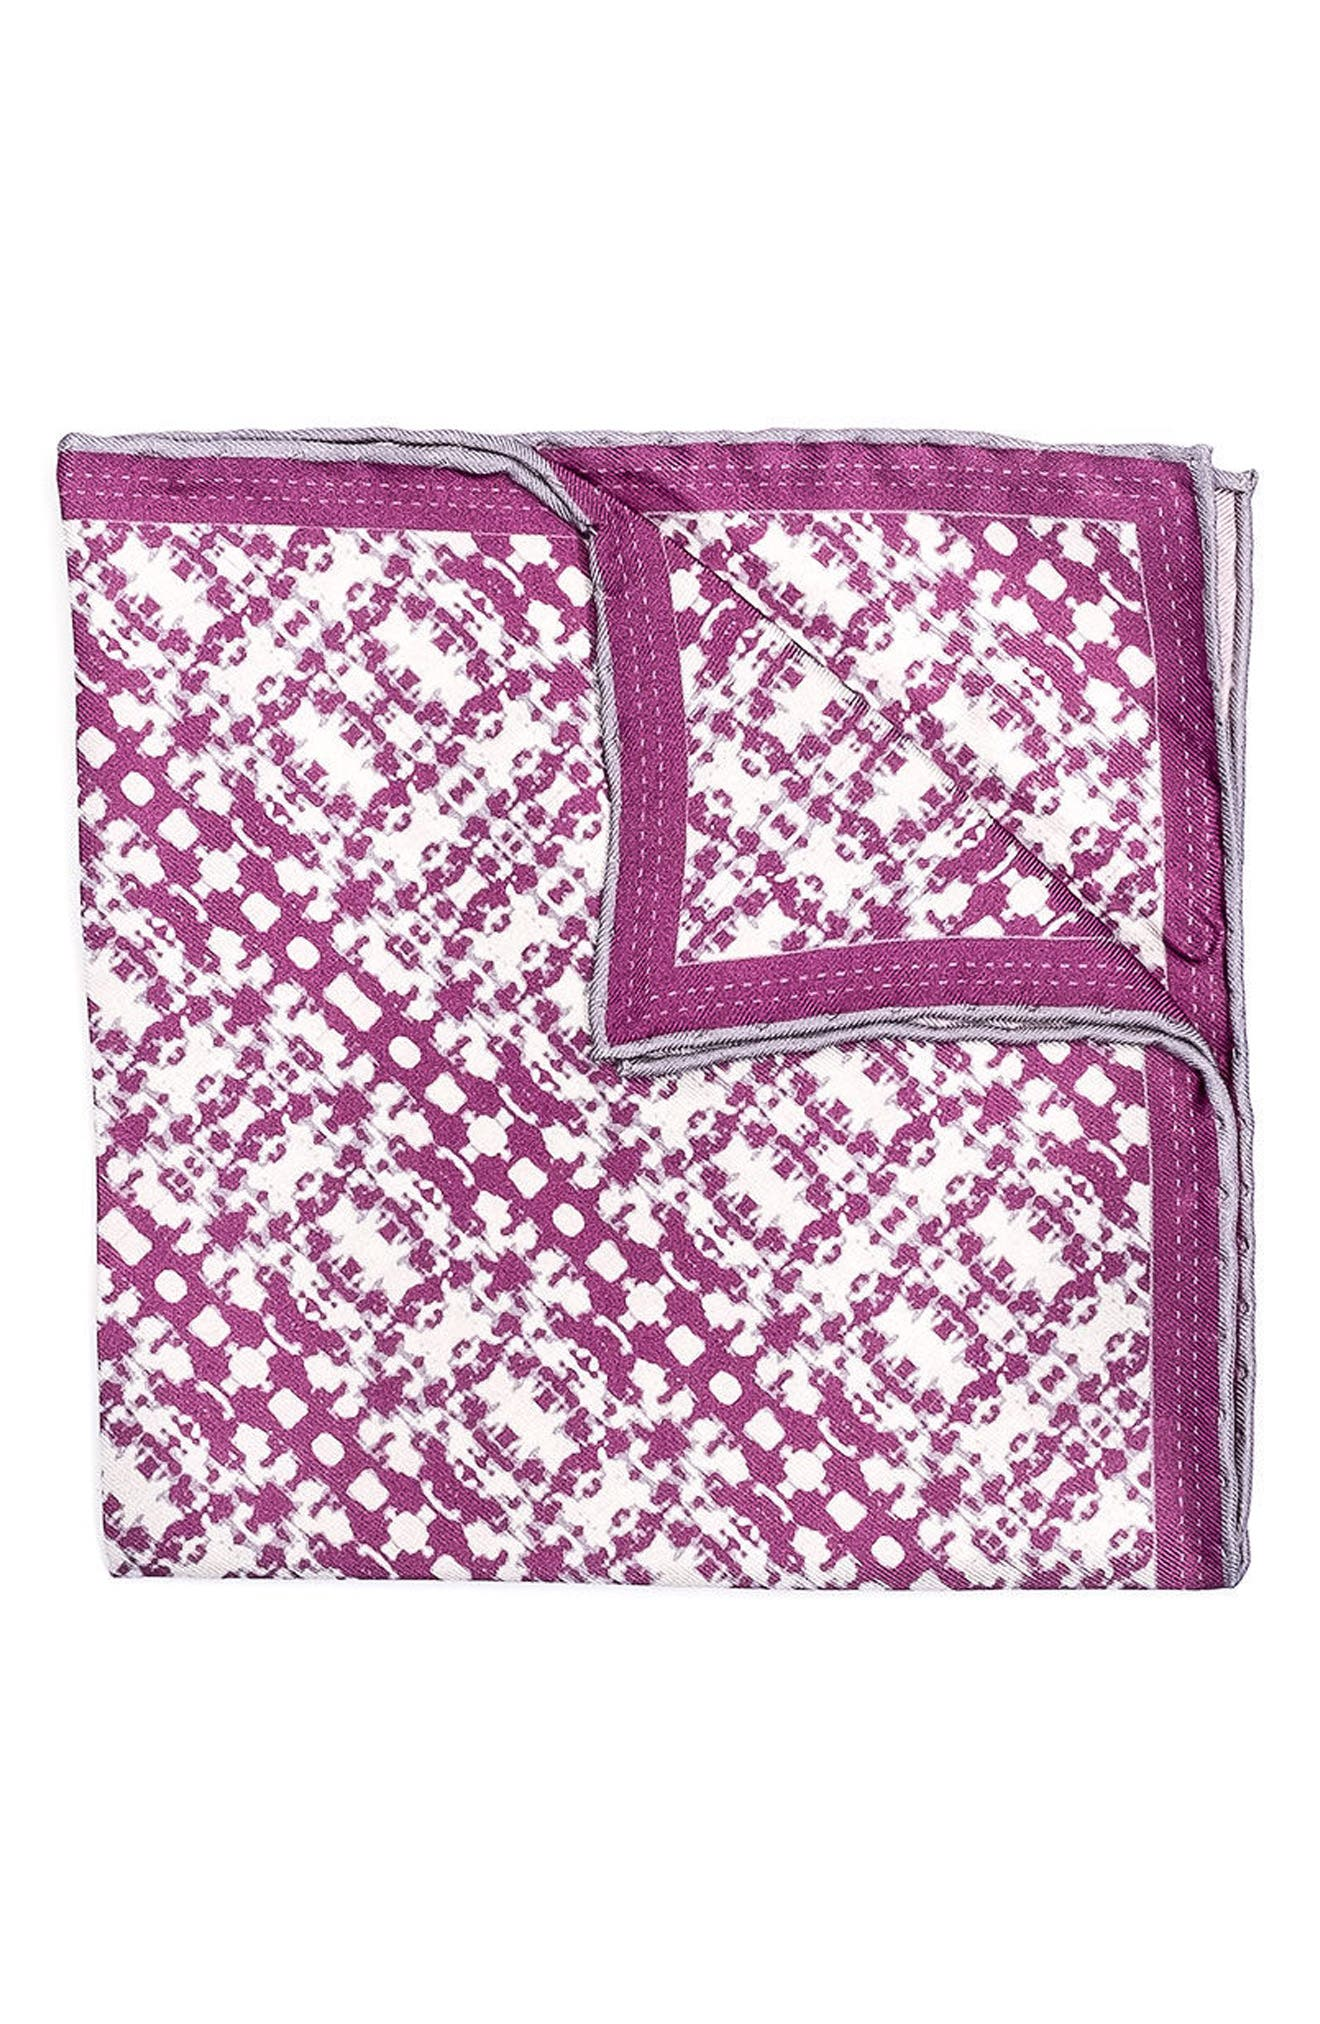 HOOK + ALBERT Batik Patterned Silk Pocket Square